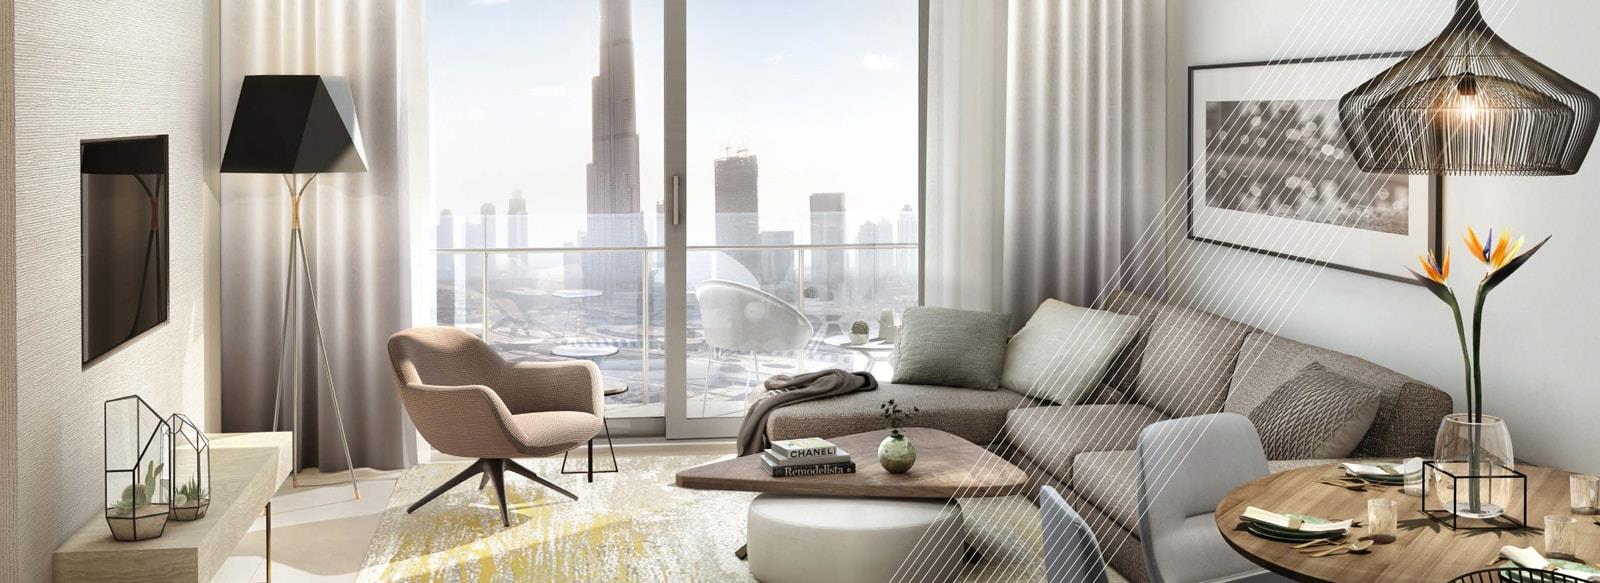 2 BR Starting From AED 2,010,888